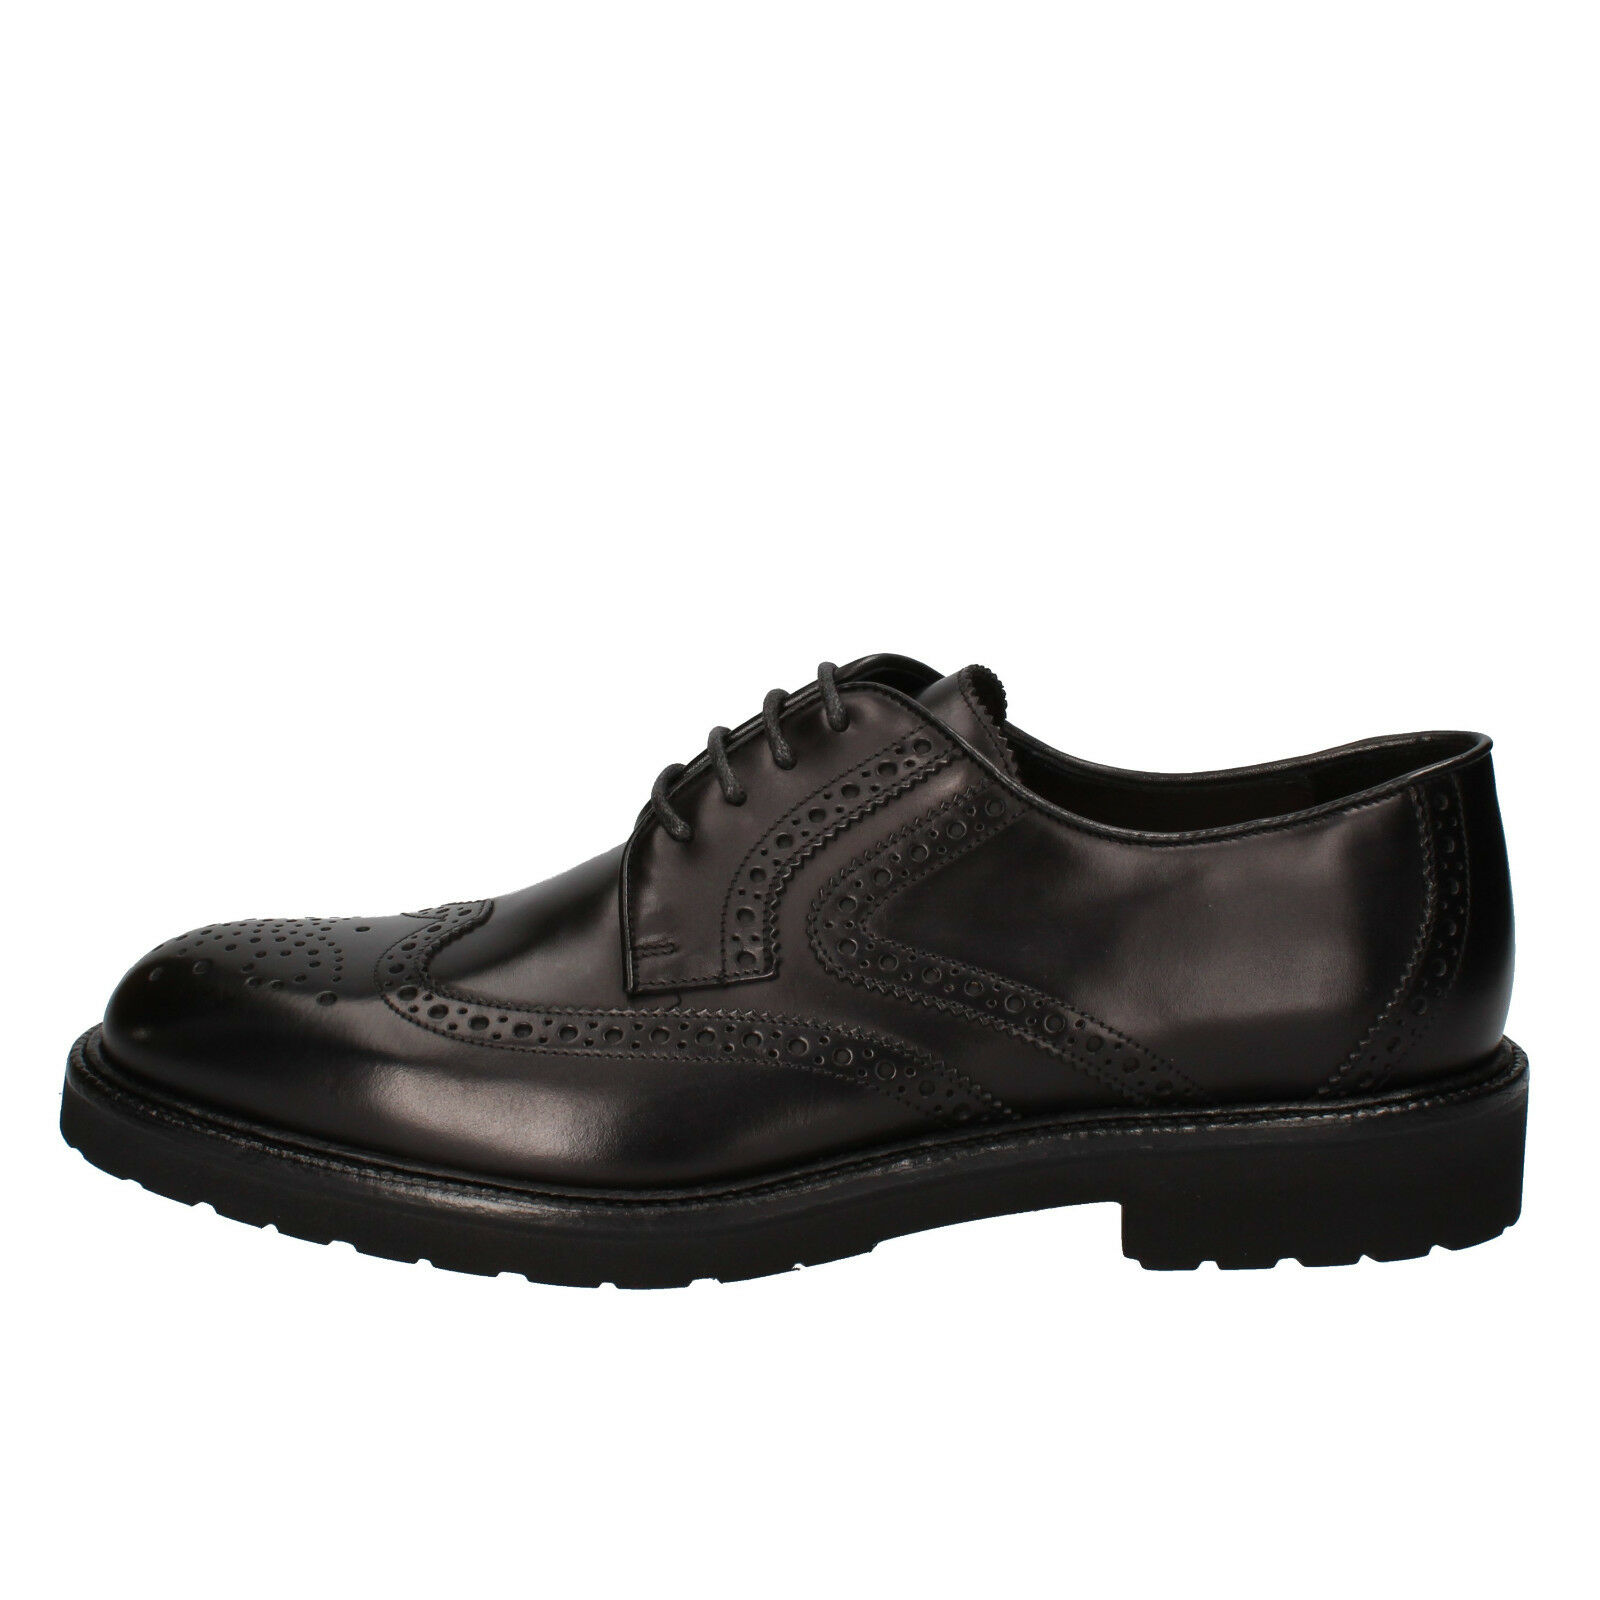 Men's shoes ROSSI 12 (EU 45) elegant black leather AD239-C